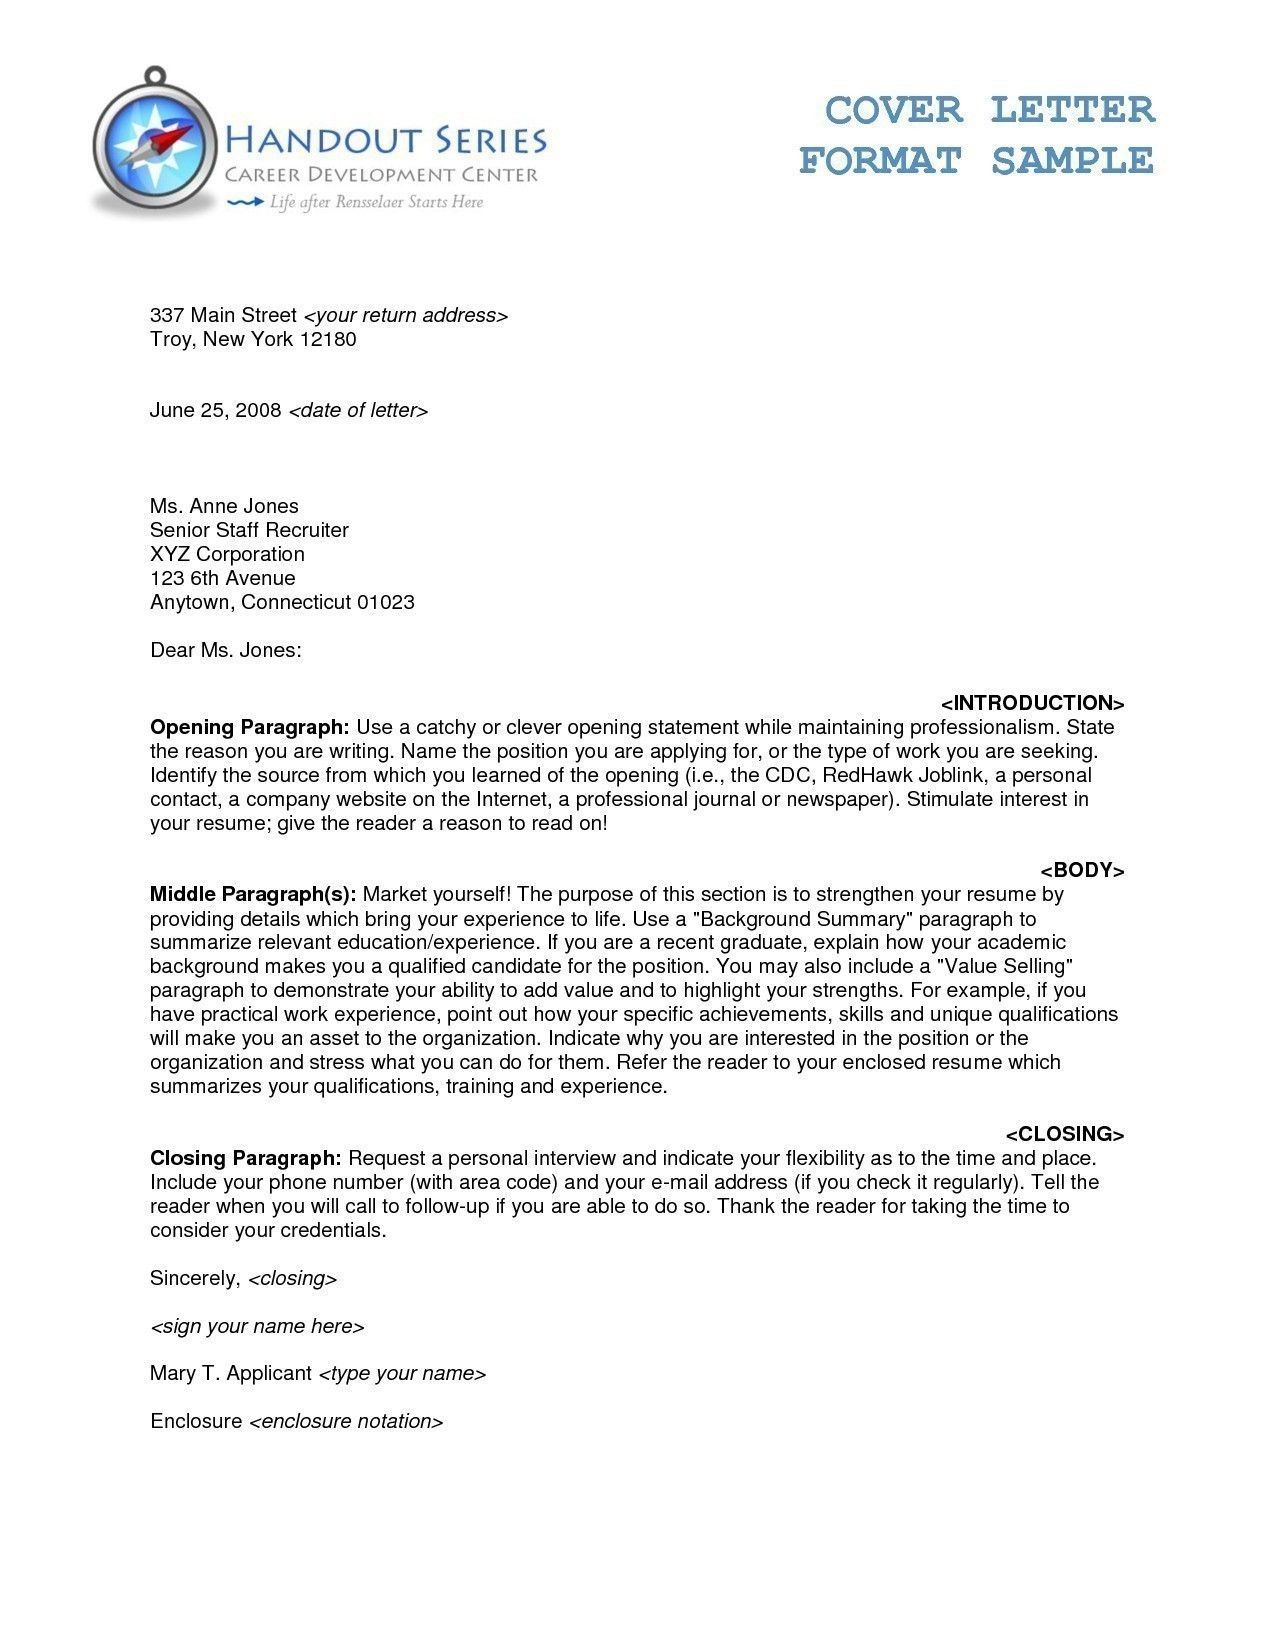 Formal Business Letter Format With Cc Business Letter Format Business Letter Template Formal Business Letter Format